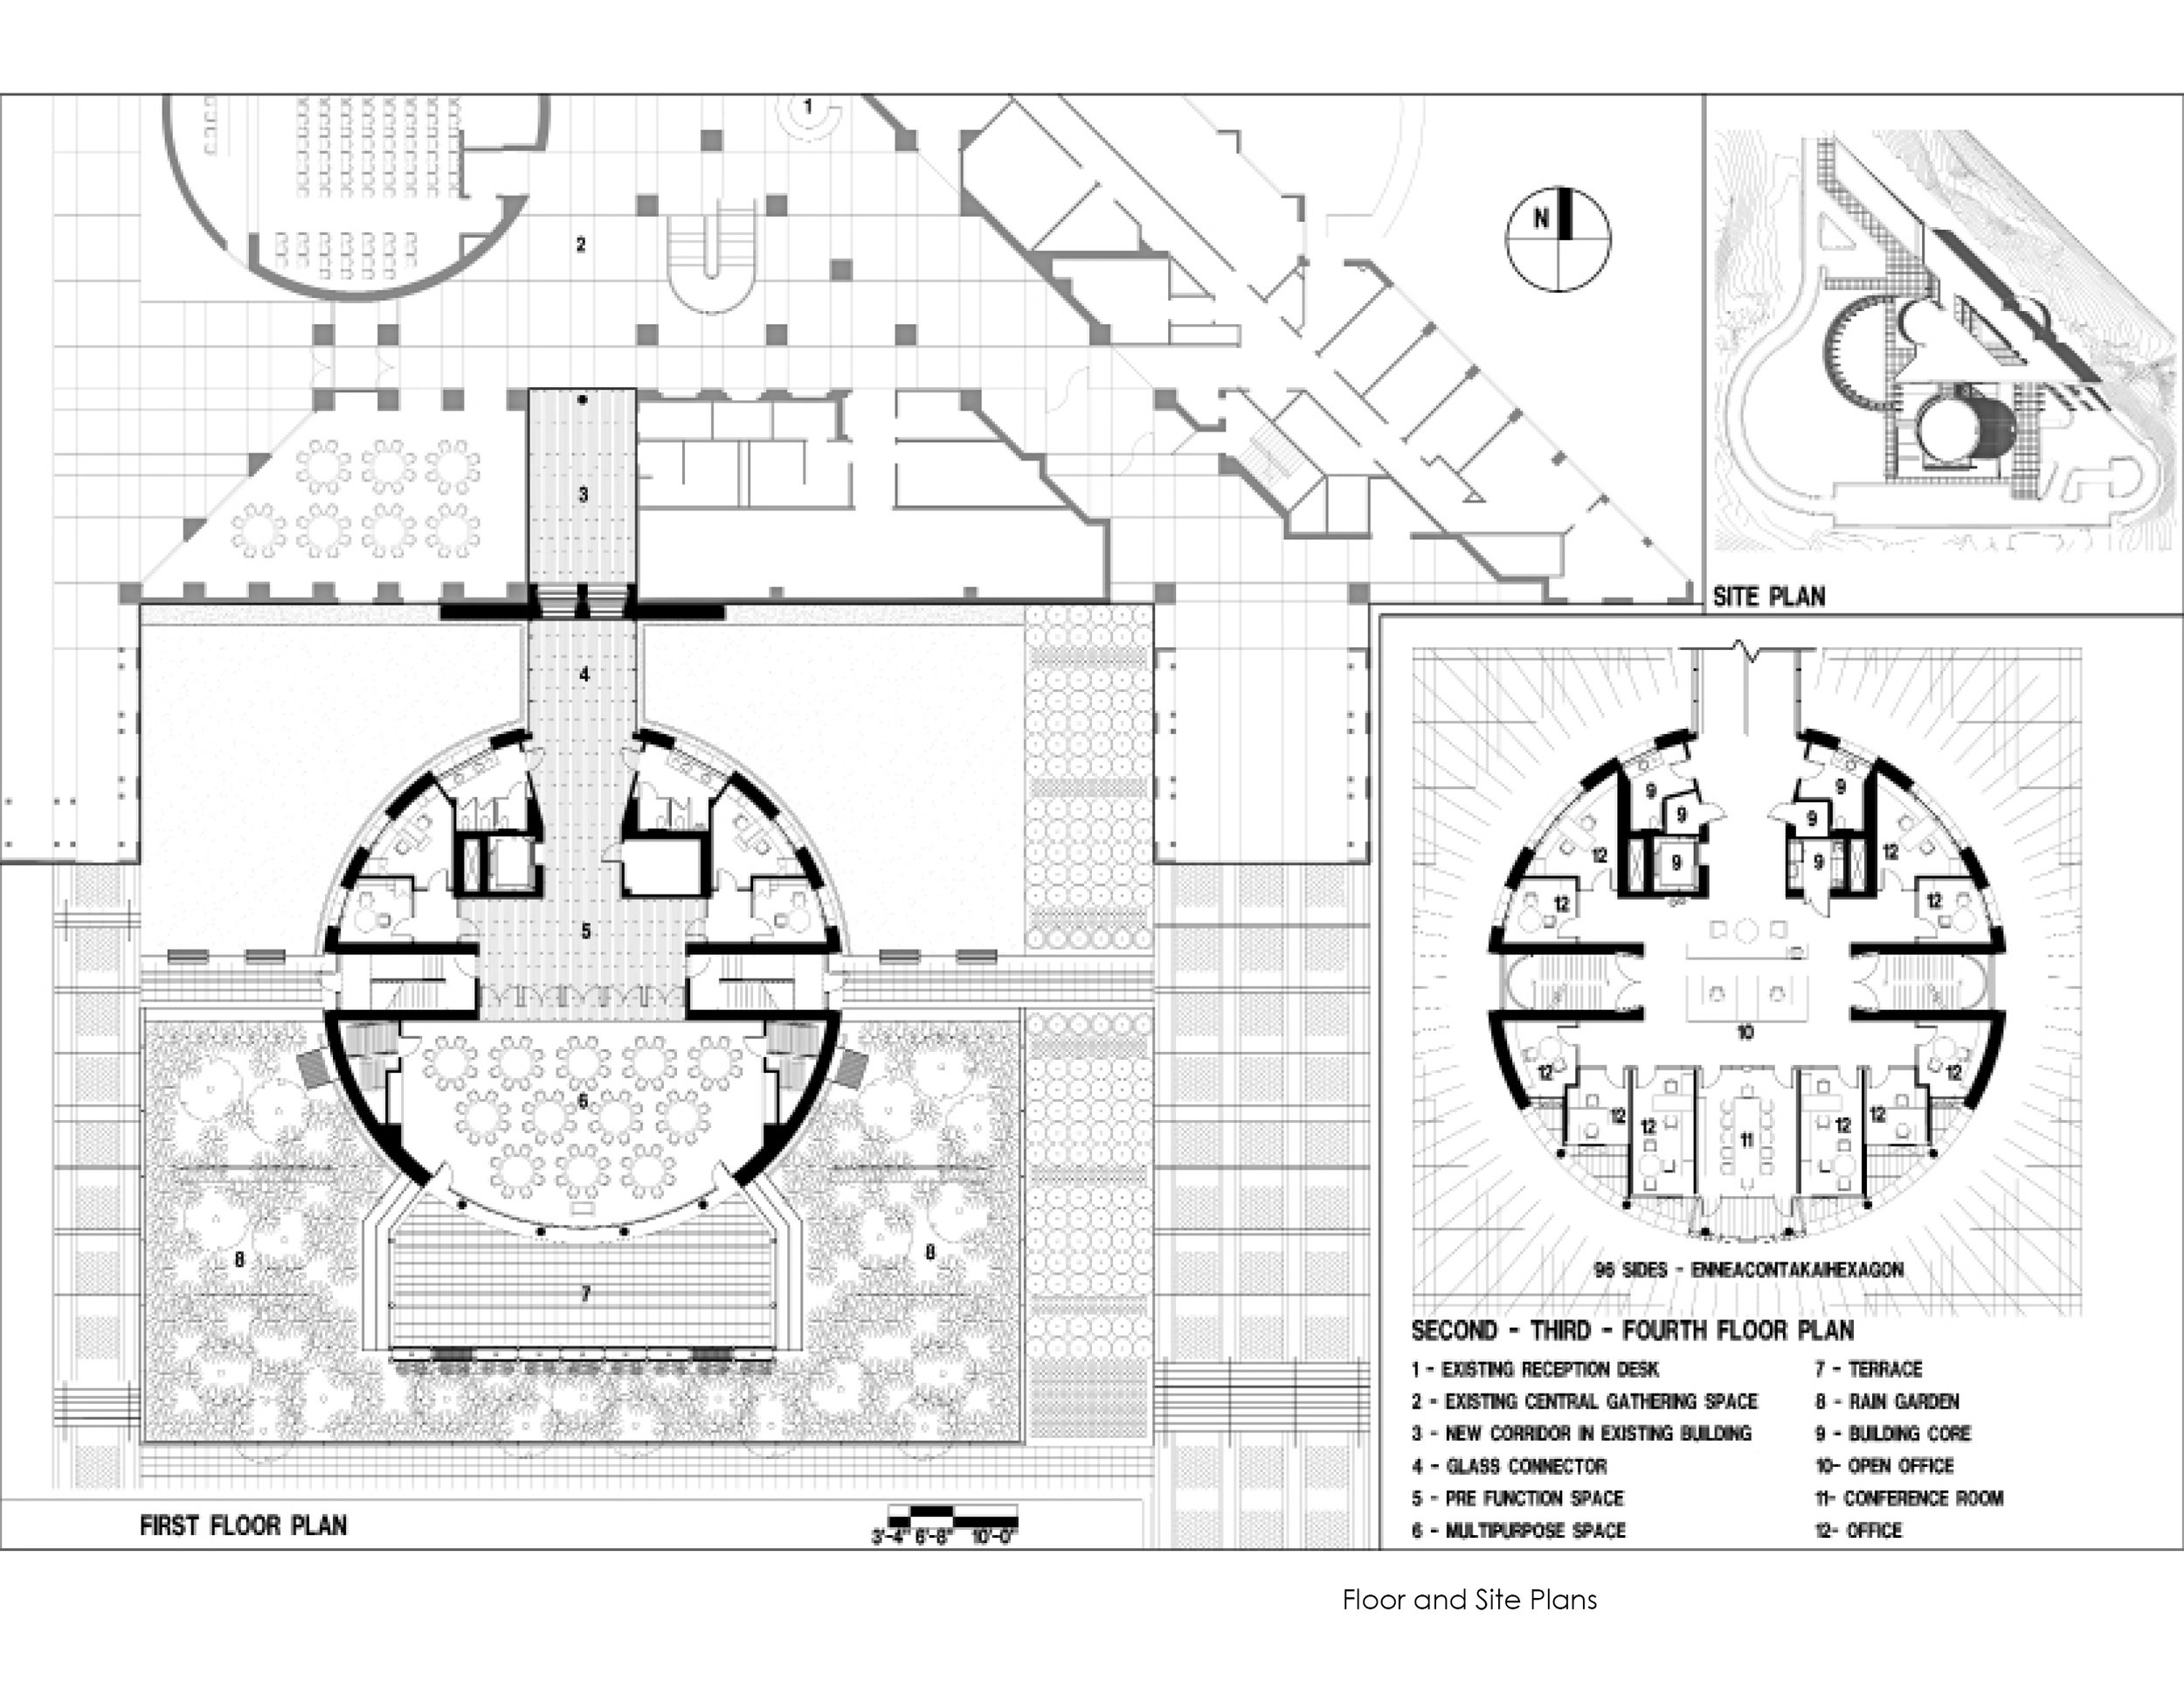 North Carolina Biotechnology Center Office | Architecture Blueprint | Building Floorplan